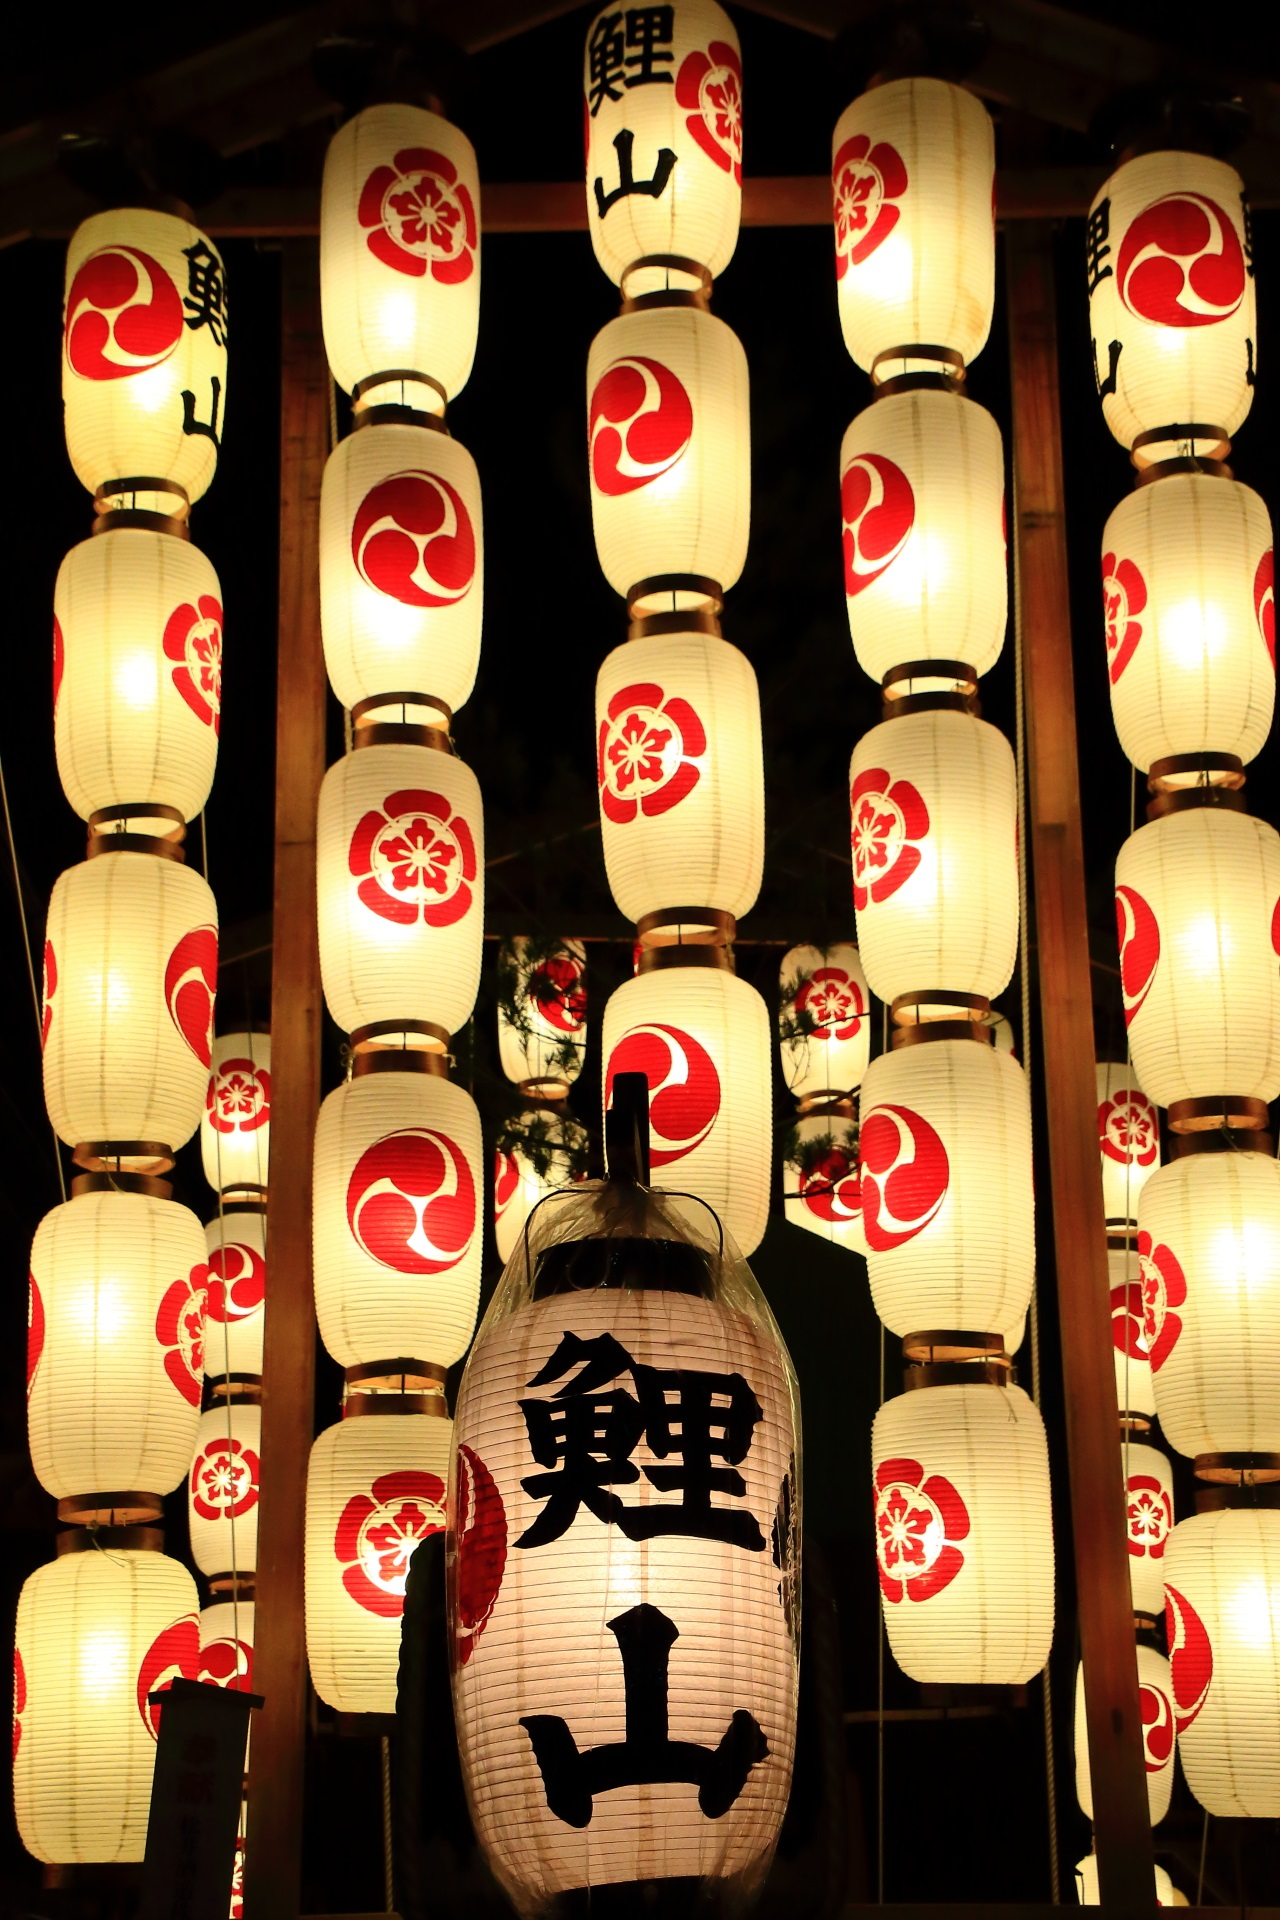 An idyllic lantern of Yoi-Yama in the Gion-Matsuri Festival in Kyoto